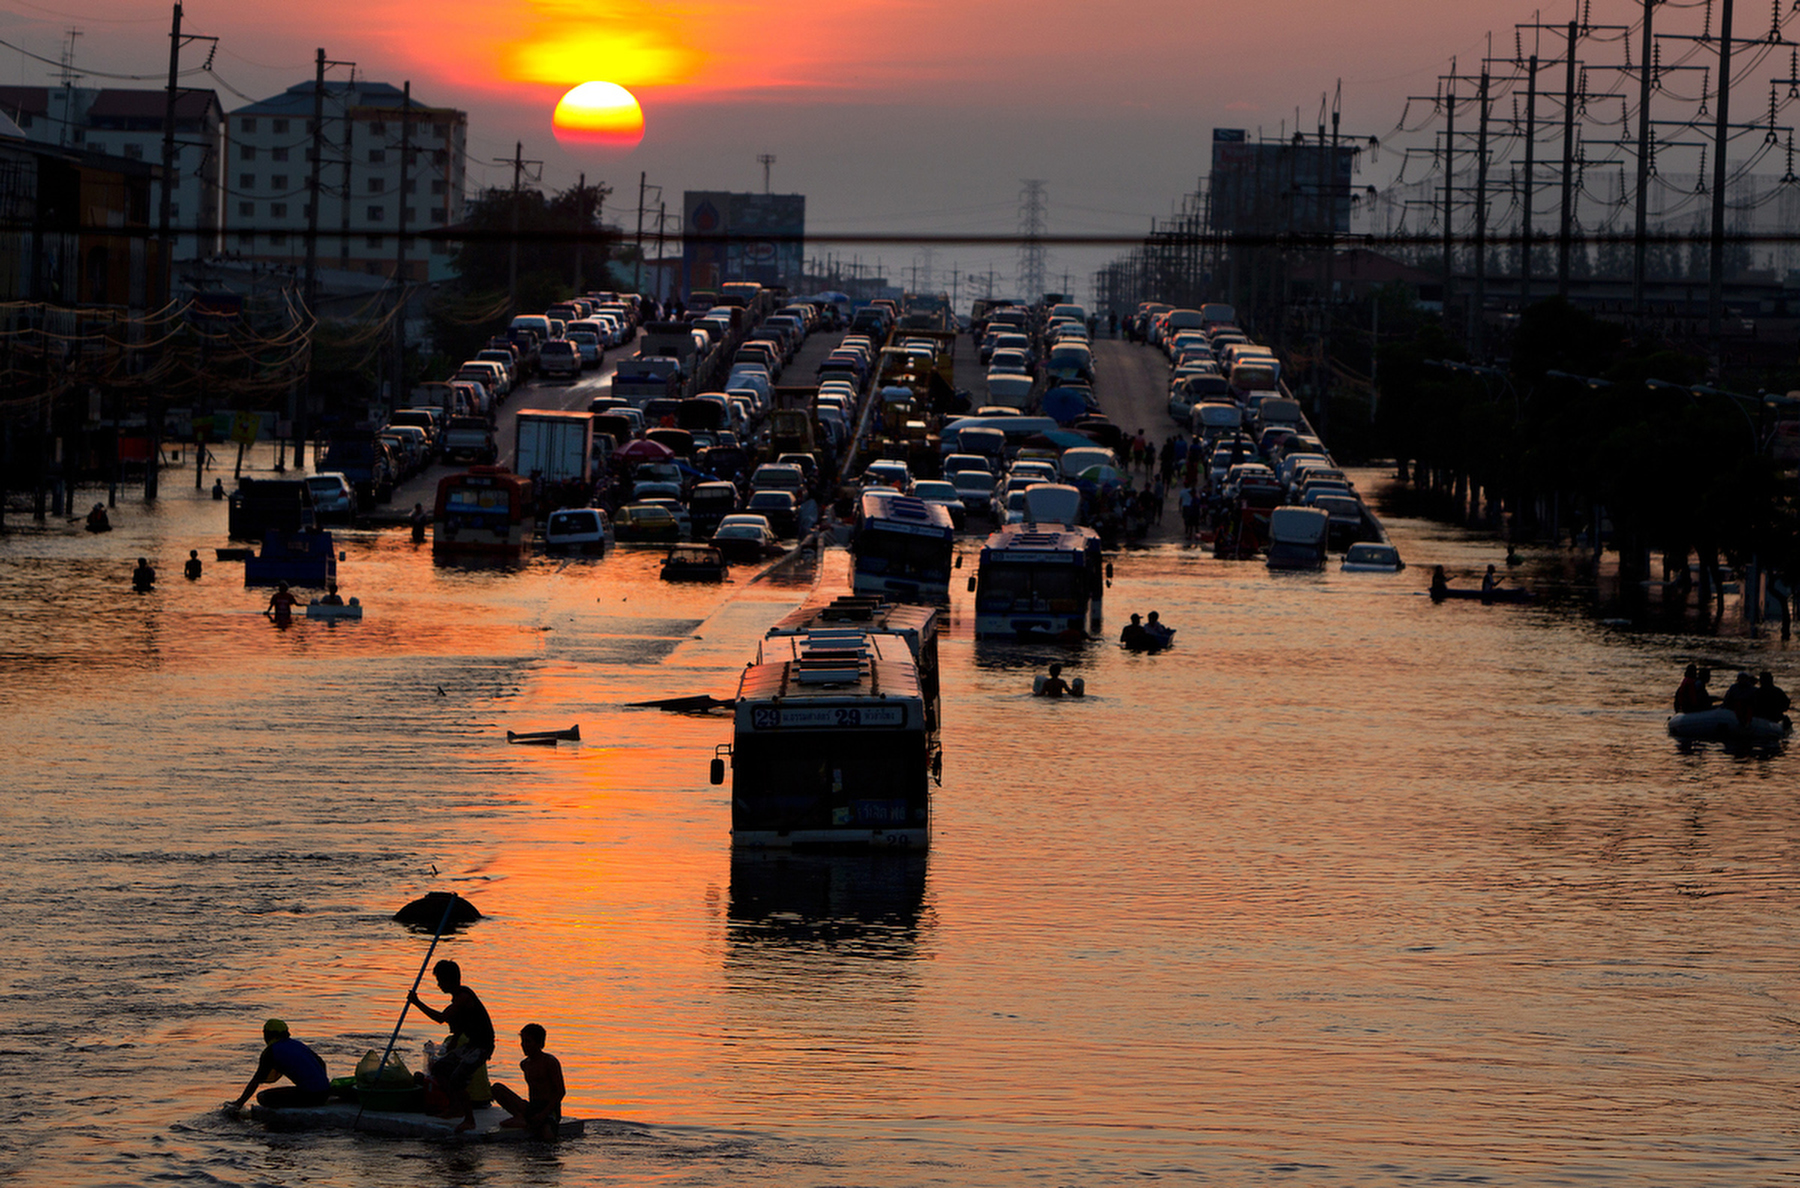 RANGSIT,THAILAND - OCTOBER 24rd: Flood victims make their way through the high waters as the sunsets along the flooded streets in Rangsit on the outskirts of Bangkok October 24, 2011 in Bangkok, Thailand. Hundreds of factories closed in the central Thai province of Ayutthaya and Nonthaburi as the waters come closer to threaten Bangkok as well. Around 350 people have died in flood-related incidents since late July according to the Department of Disaster Prevention and Mitigation. Thailand is experiencing the worst flooding in 50 years with damages running as high as $6 billion which could increase of the floods swamp Bangkok.(Photo by Paula Bronstein /Getty Images)